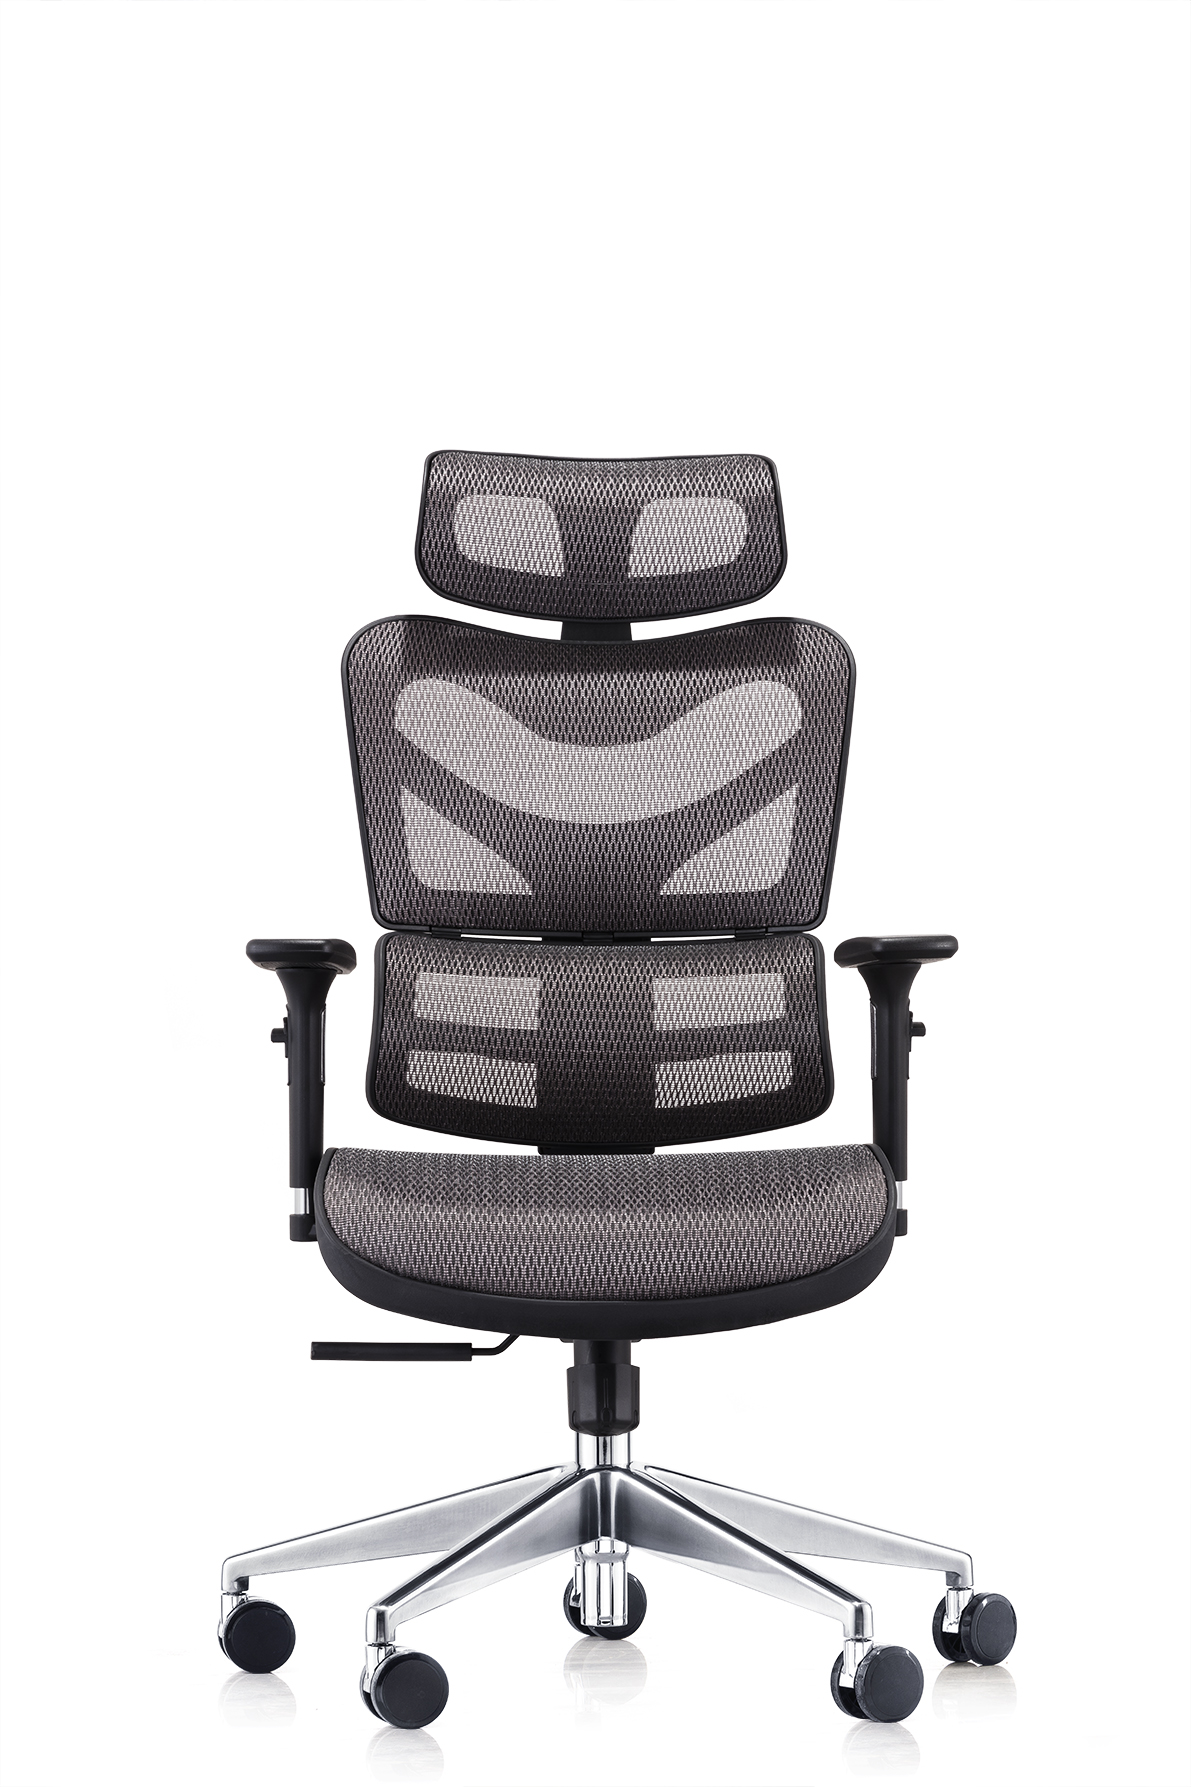 High Back Full Mesh Ergonomic Chair with BIFMA Certified; Full Mesh Office Chair; Adjustable Headrest &  Armrest; Adjustable Lumbar Support; Multiple Angle Locking; Seat Depth Adjustable Singapore